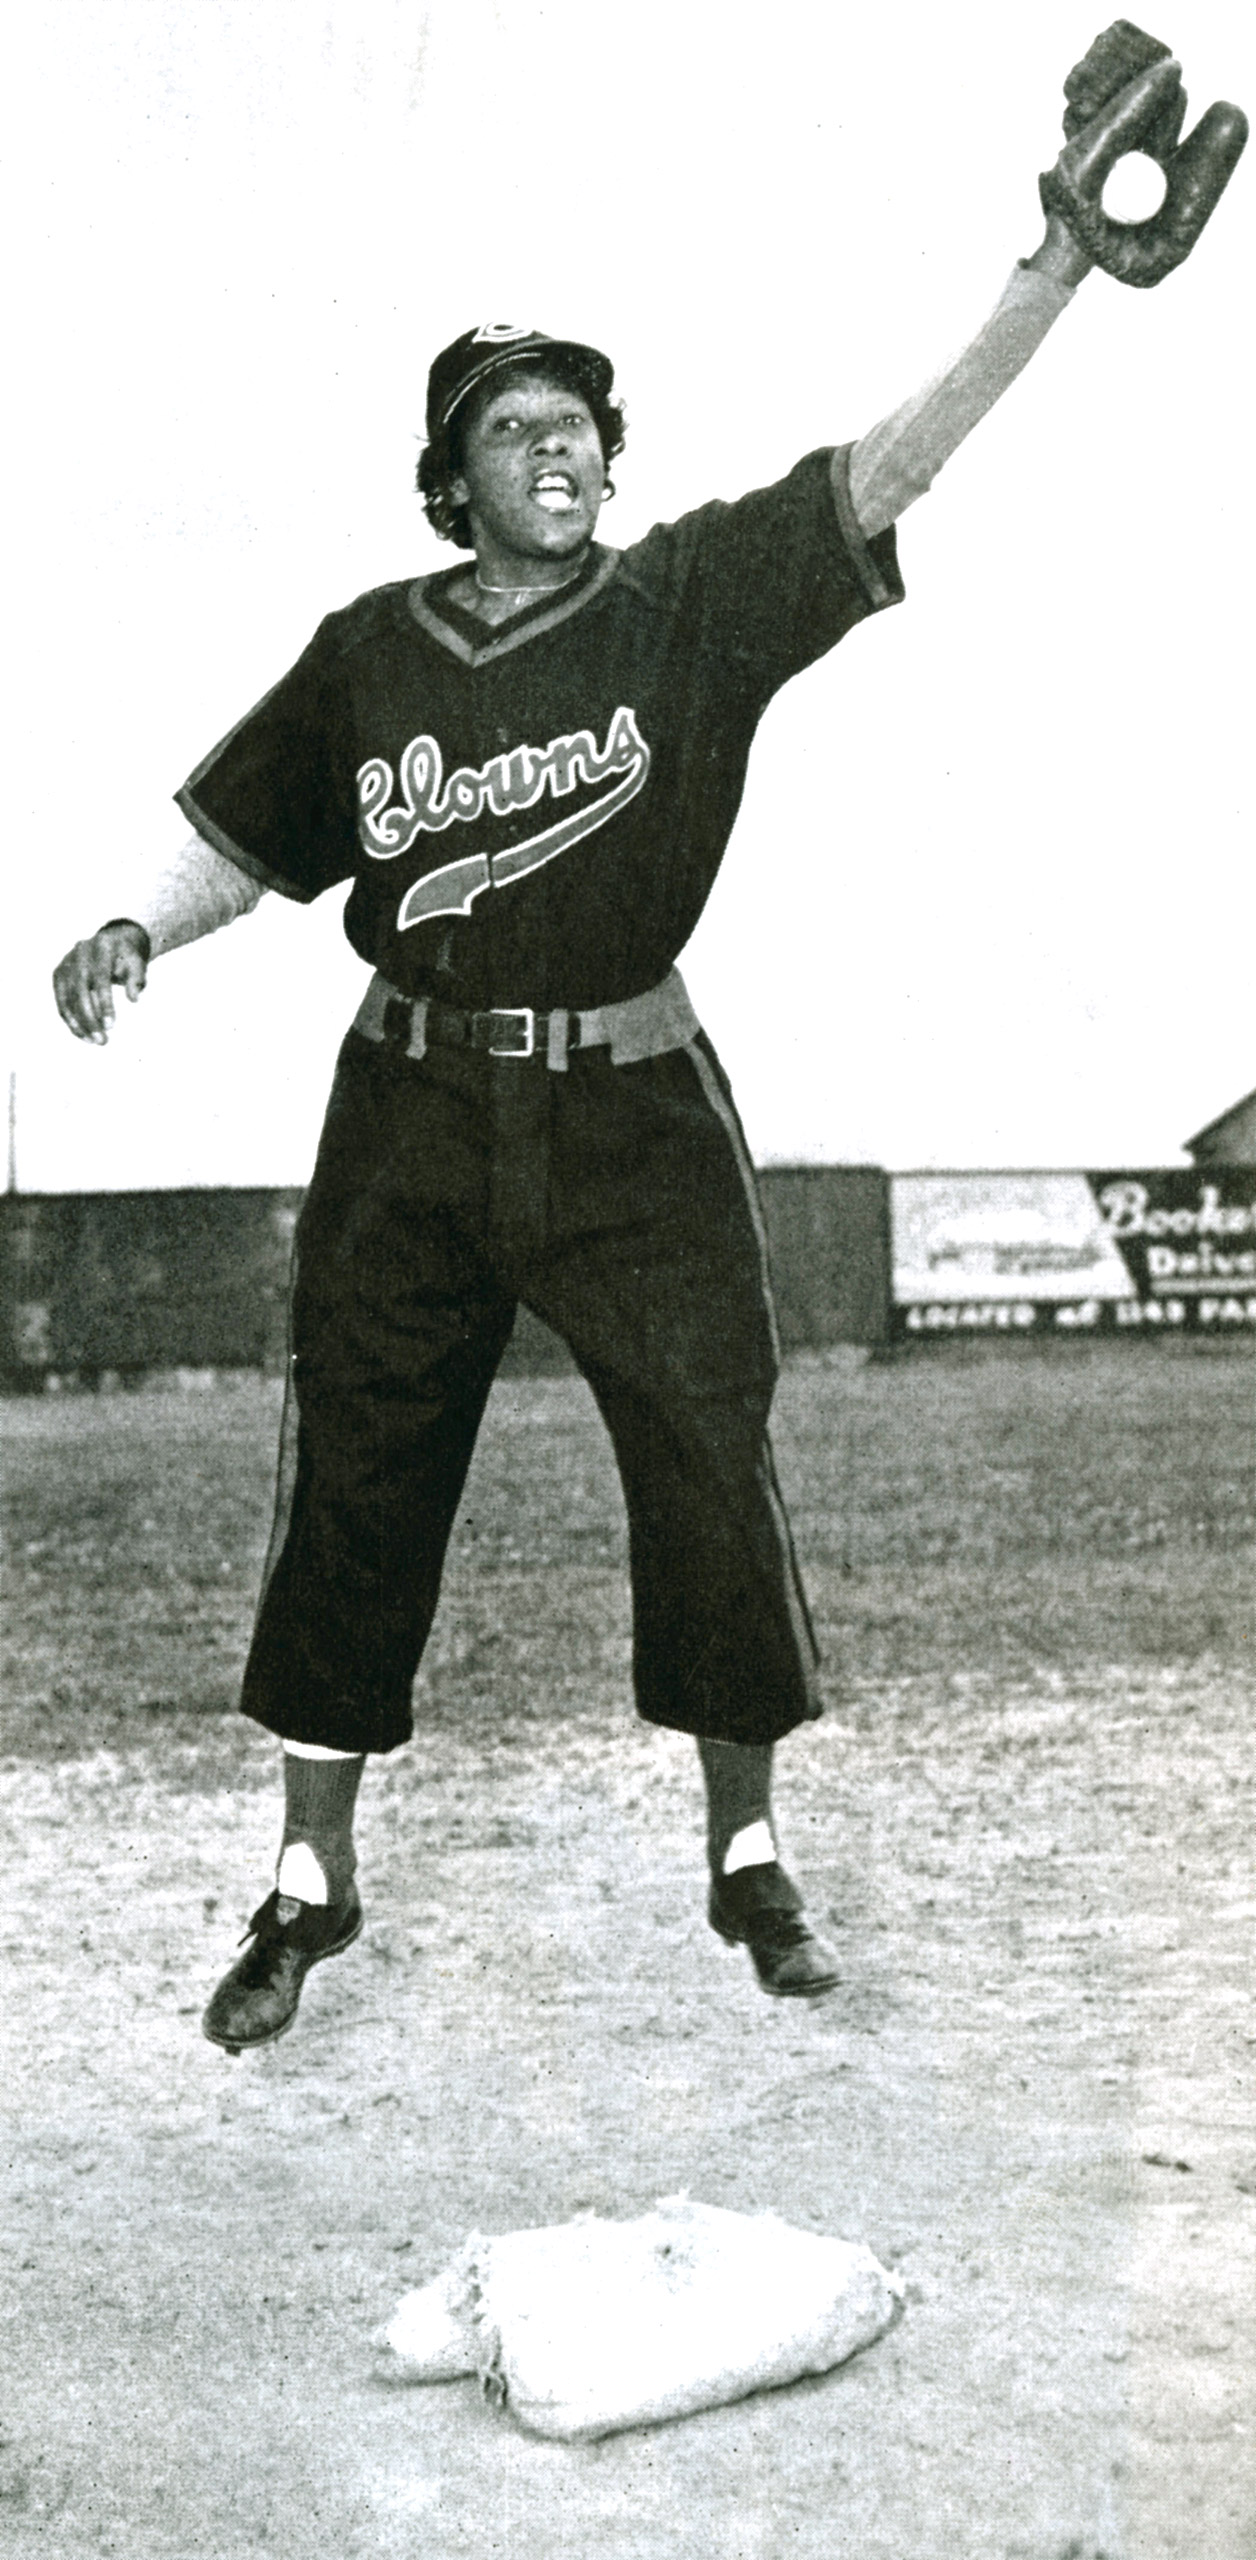 Toni Stone, shortstop for  the Indianapolis Clowns of the National Negro Leagues, works out in a photograph around 1950 in Indianapolis. She was the first woman to play in the otherwise-male Negro Leagues.